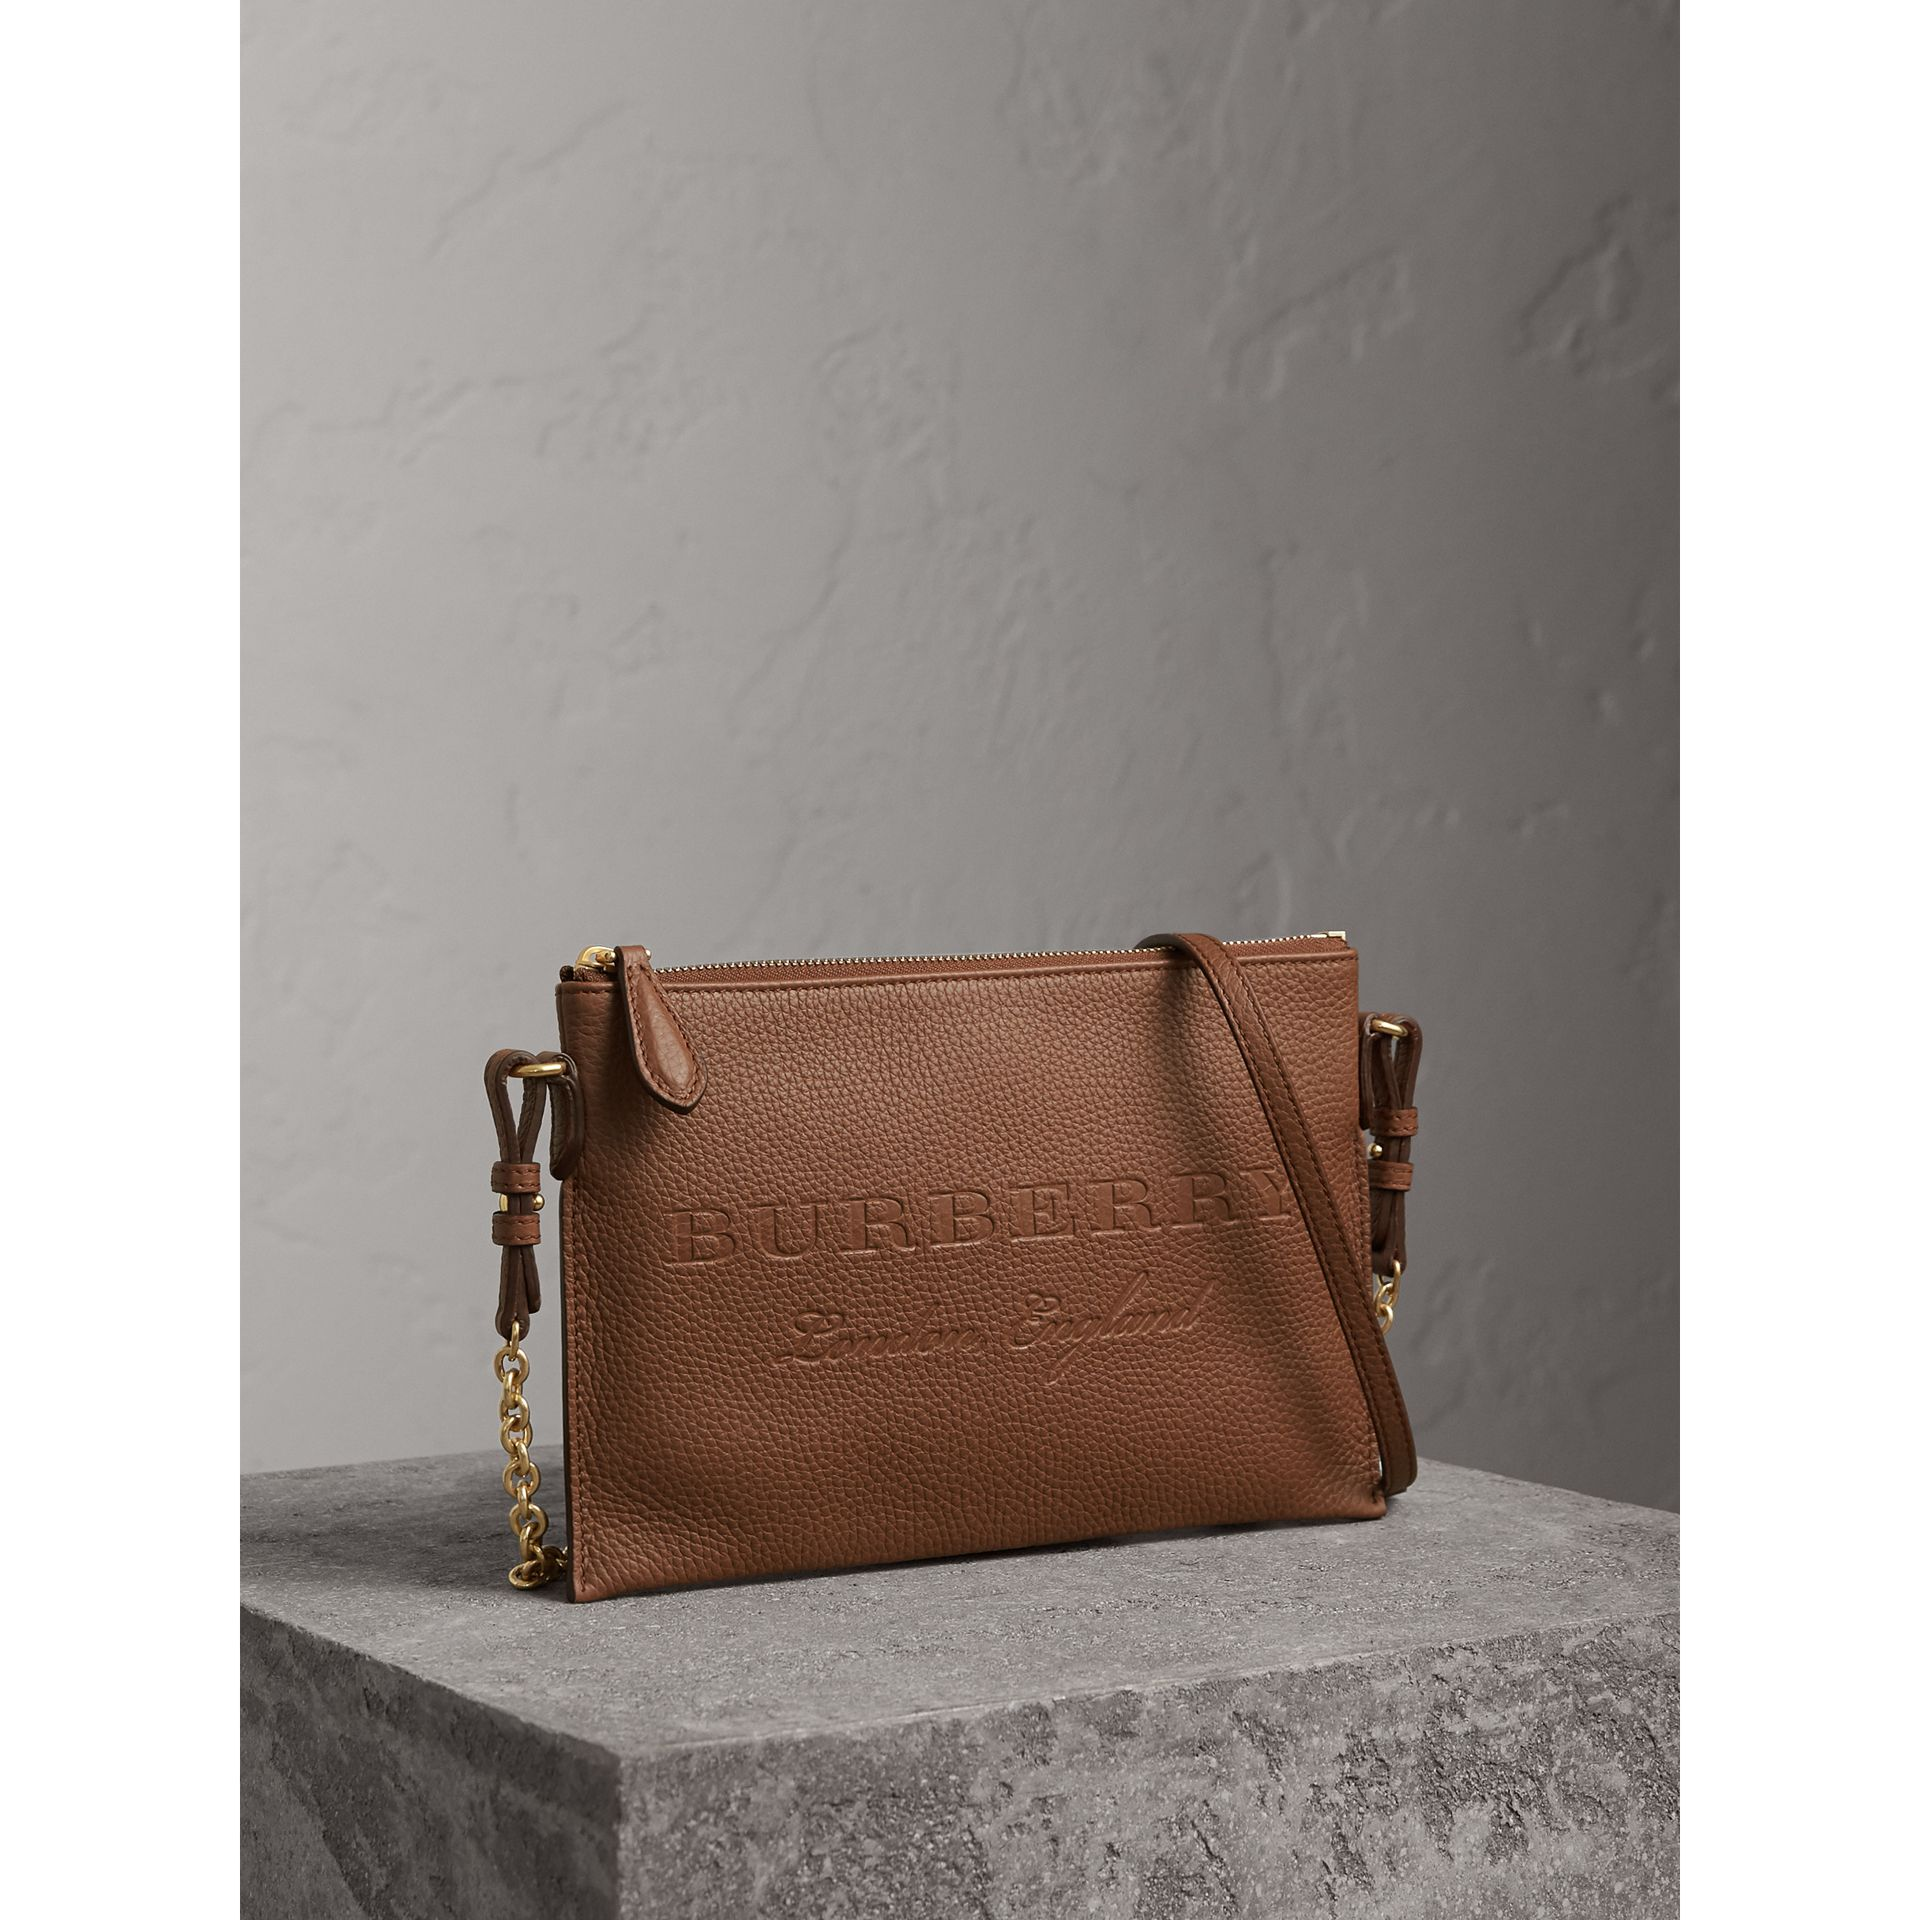 Embossed Leather Clutch Bag in Chestnut Brown - Women | Burberry Singapore - gallery image 6